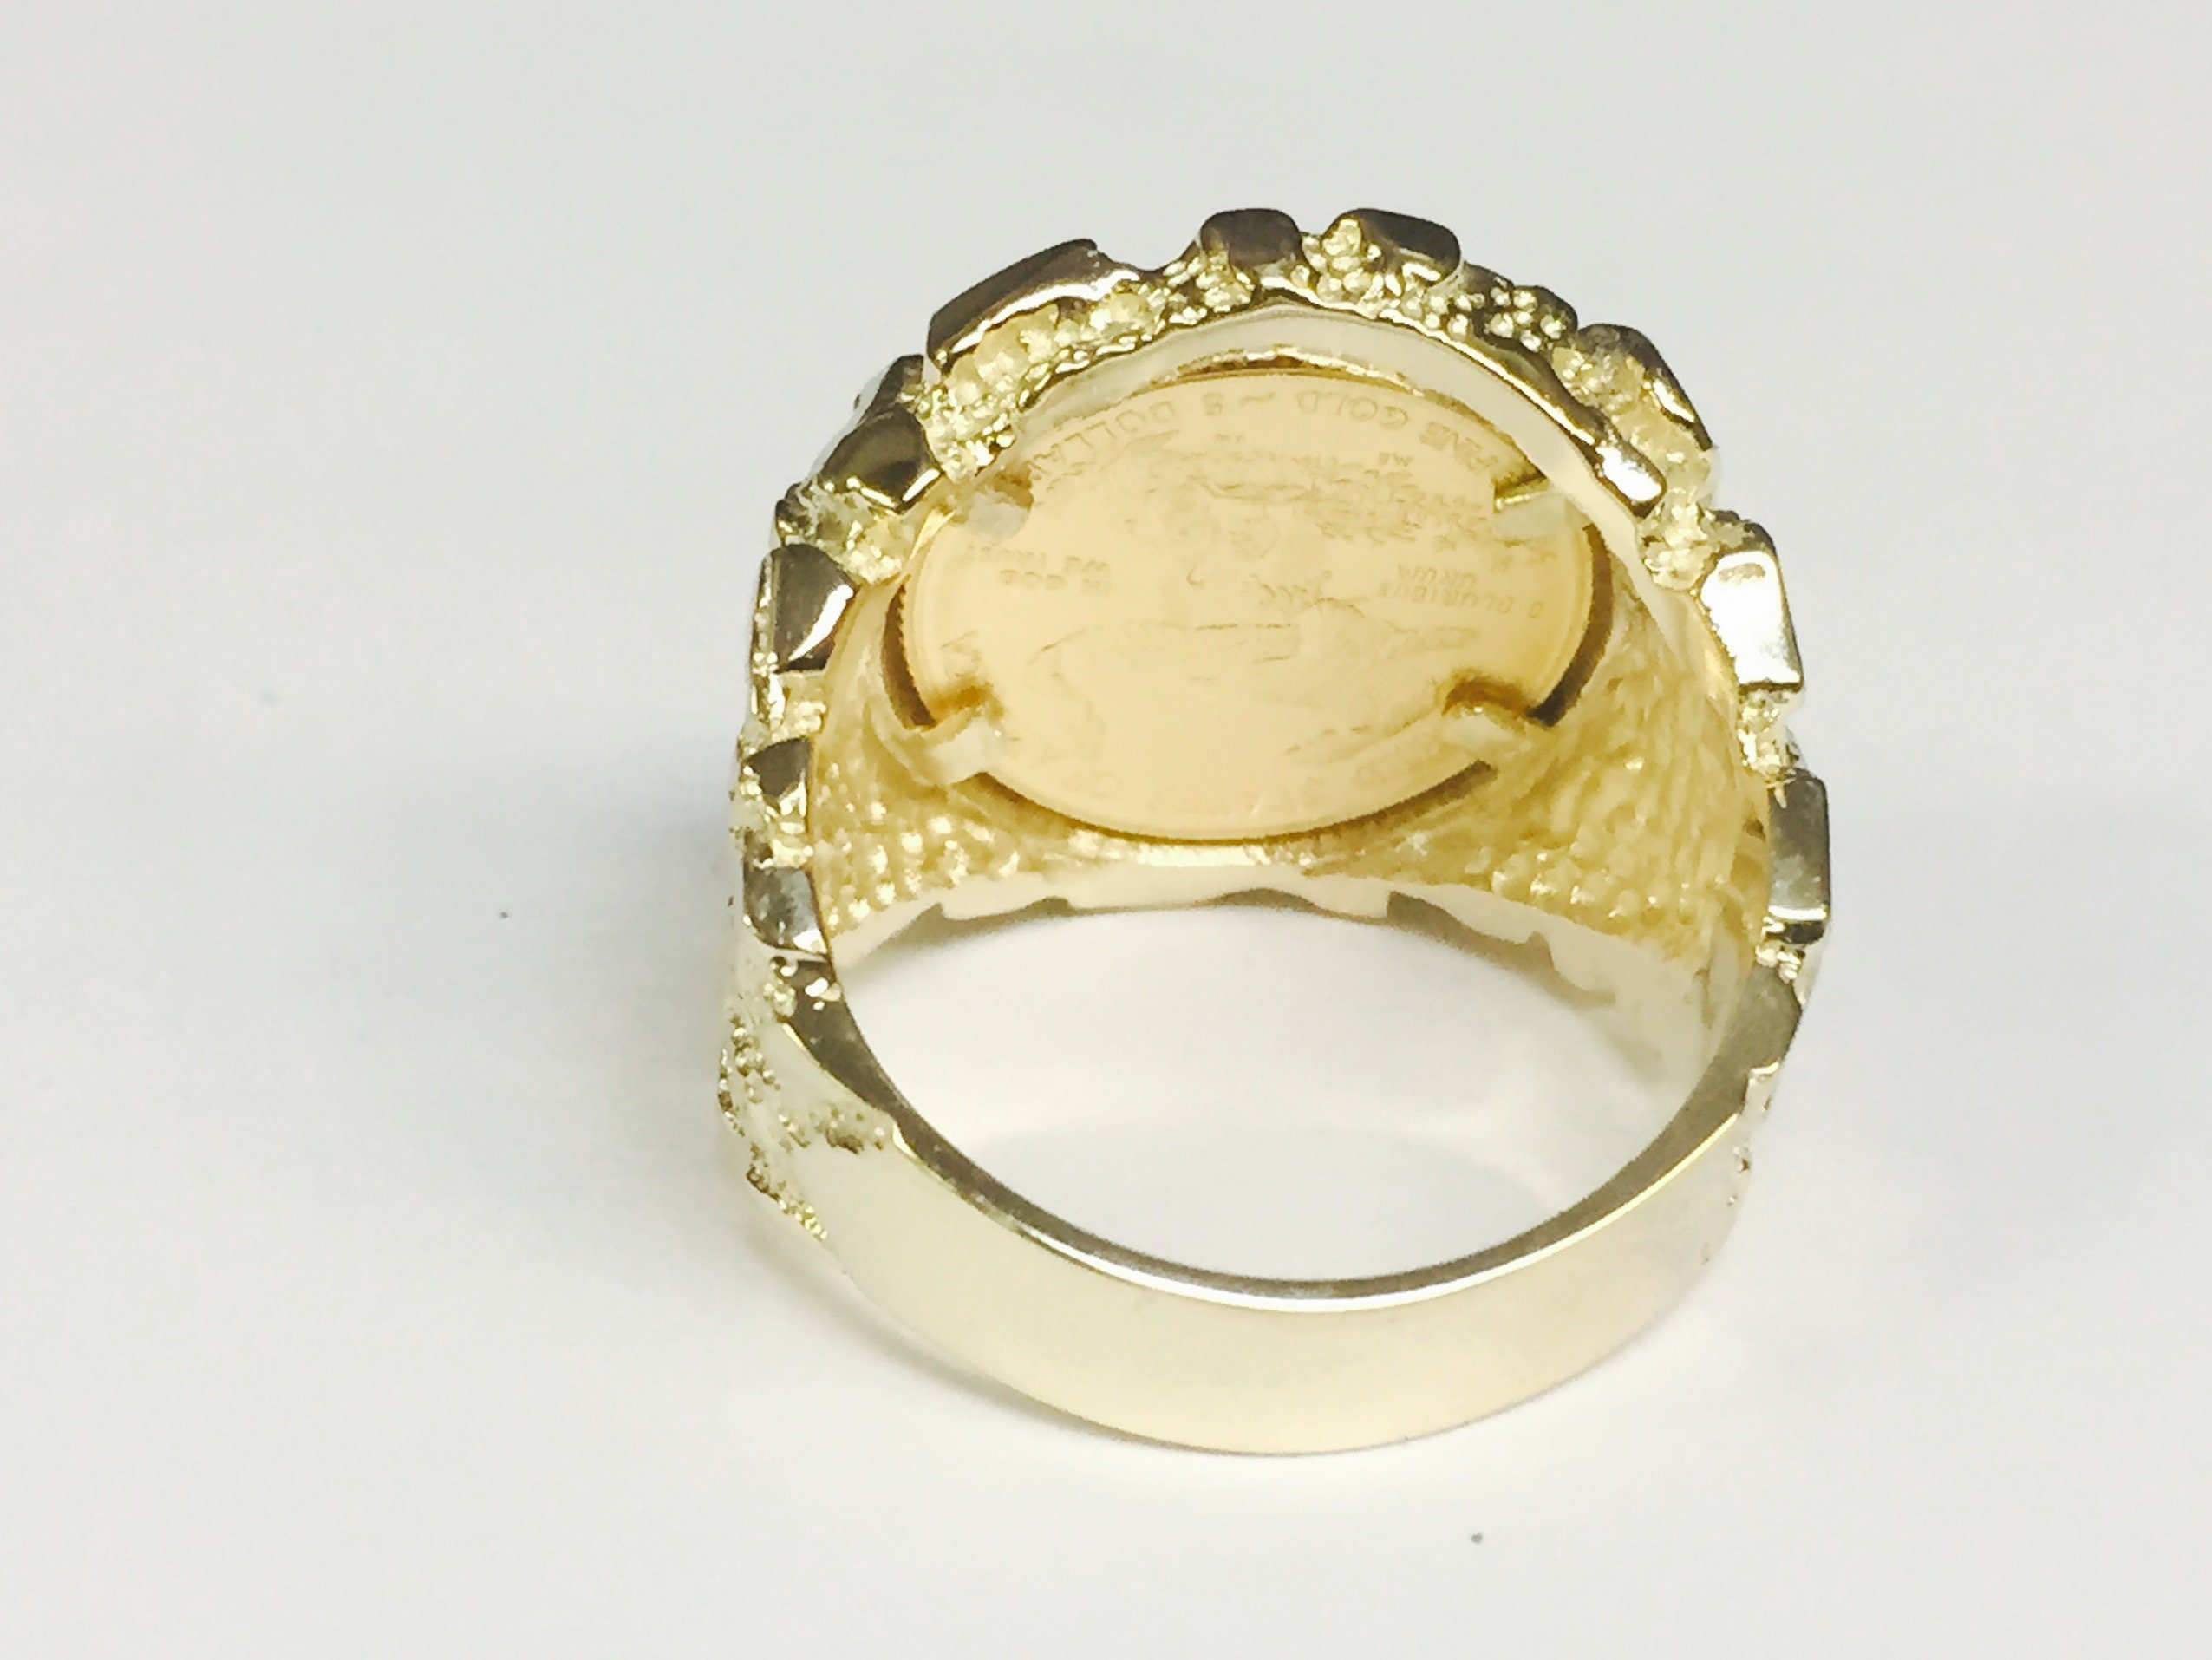 14K Gold Men'S 21 Mm Nugget Coin Ring With A 22 K 1/10 Oz American Eagle Coin - Random Year Coin by TEX (Image #5)